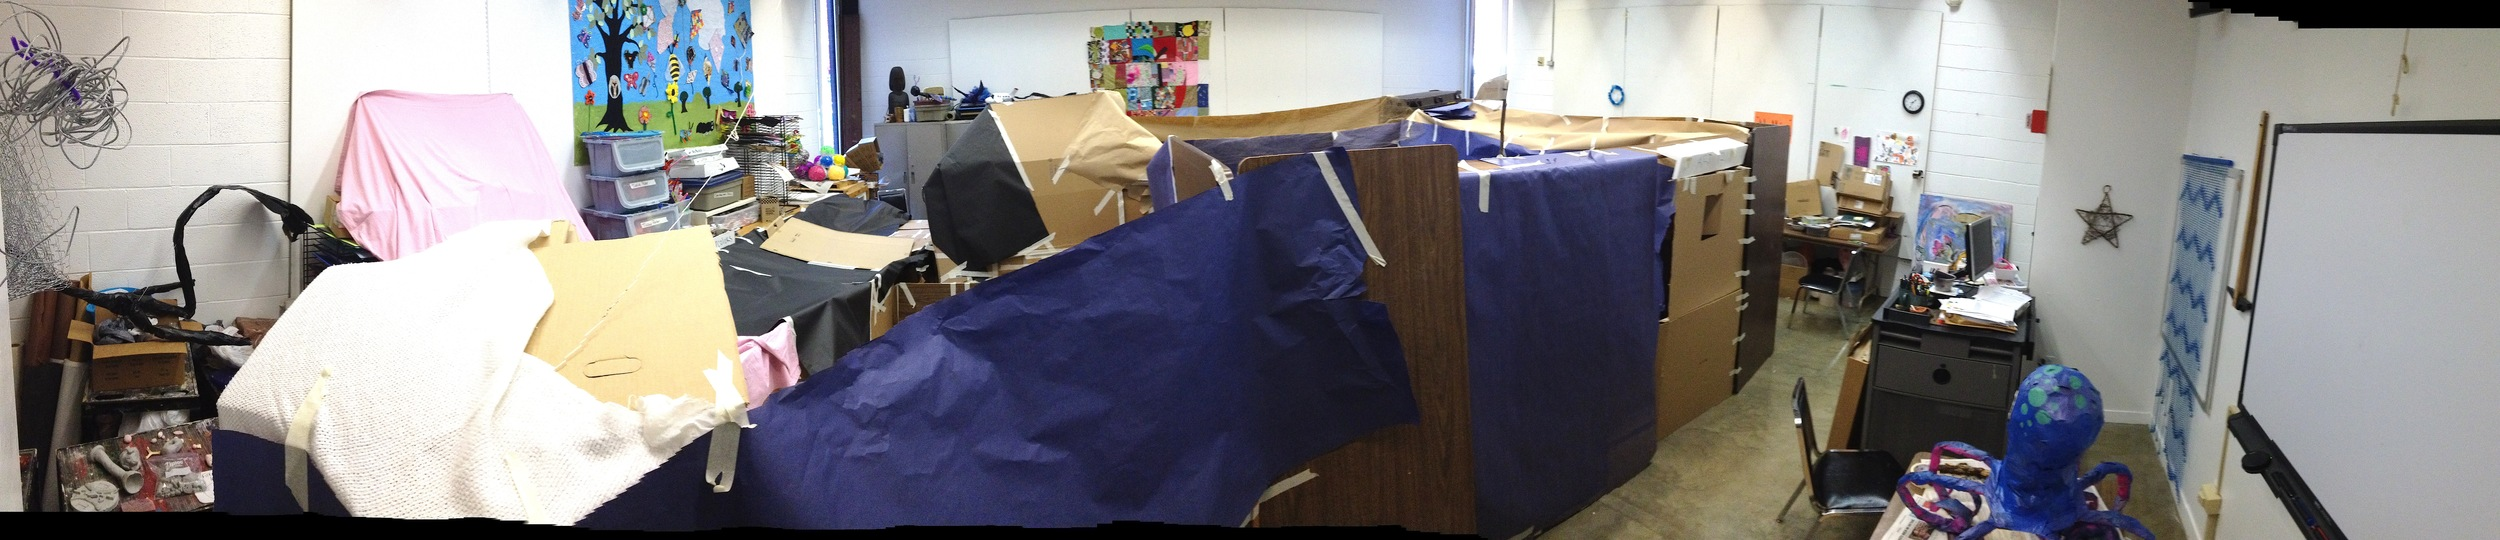 The Embodied Pedagogy of Fort Making (fall 2013)